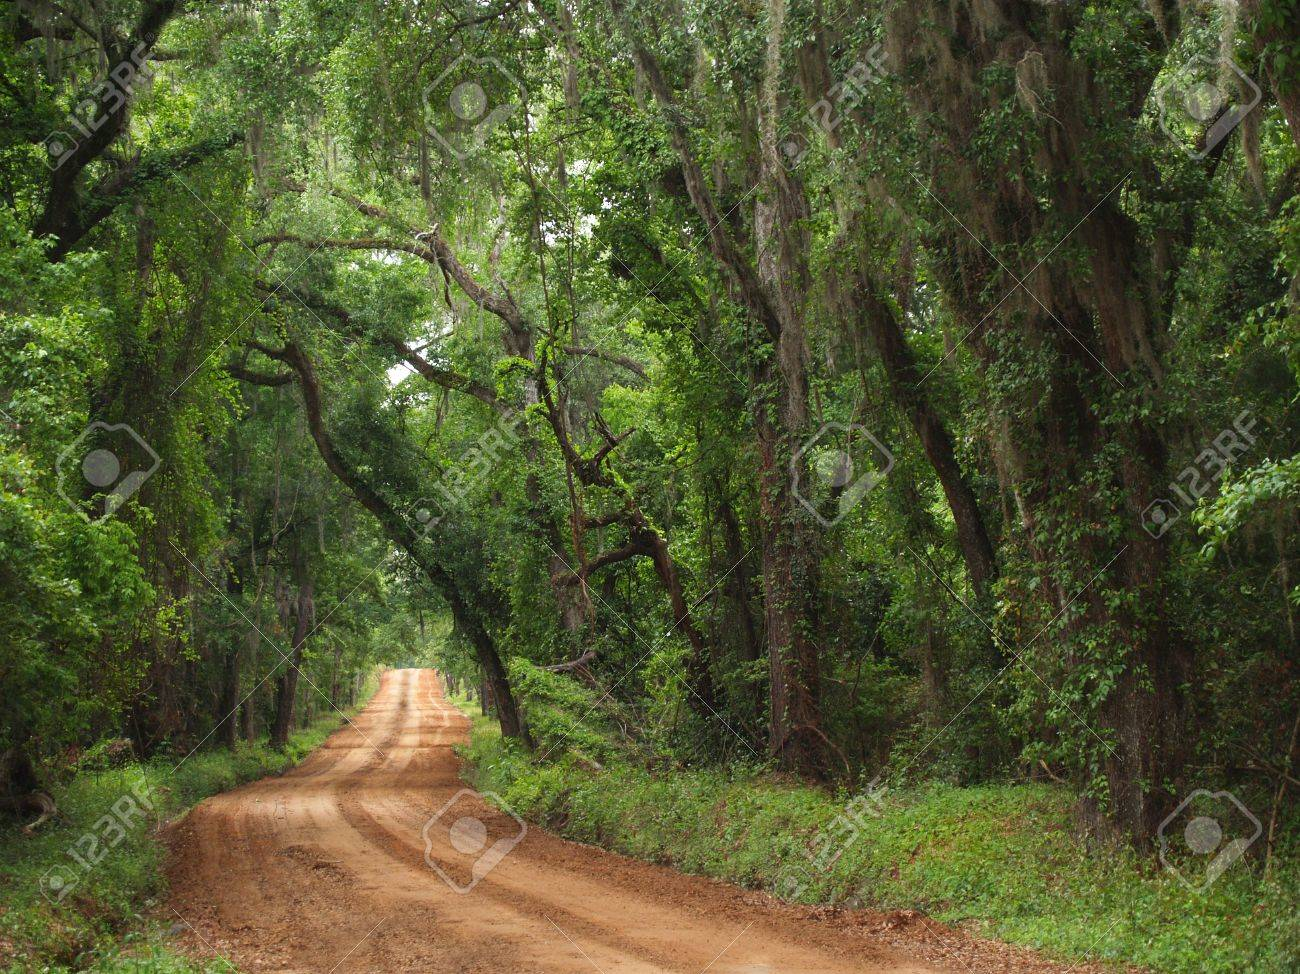 Red clay plantation country road lined with a canopy of trees and Spanish moss including live oaks in the south Georgia, north Florida area during late spring or early summer time. - 6882191